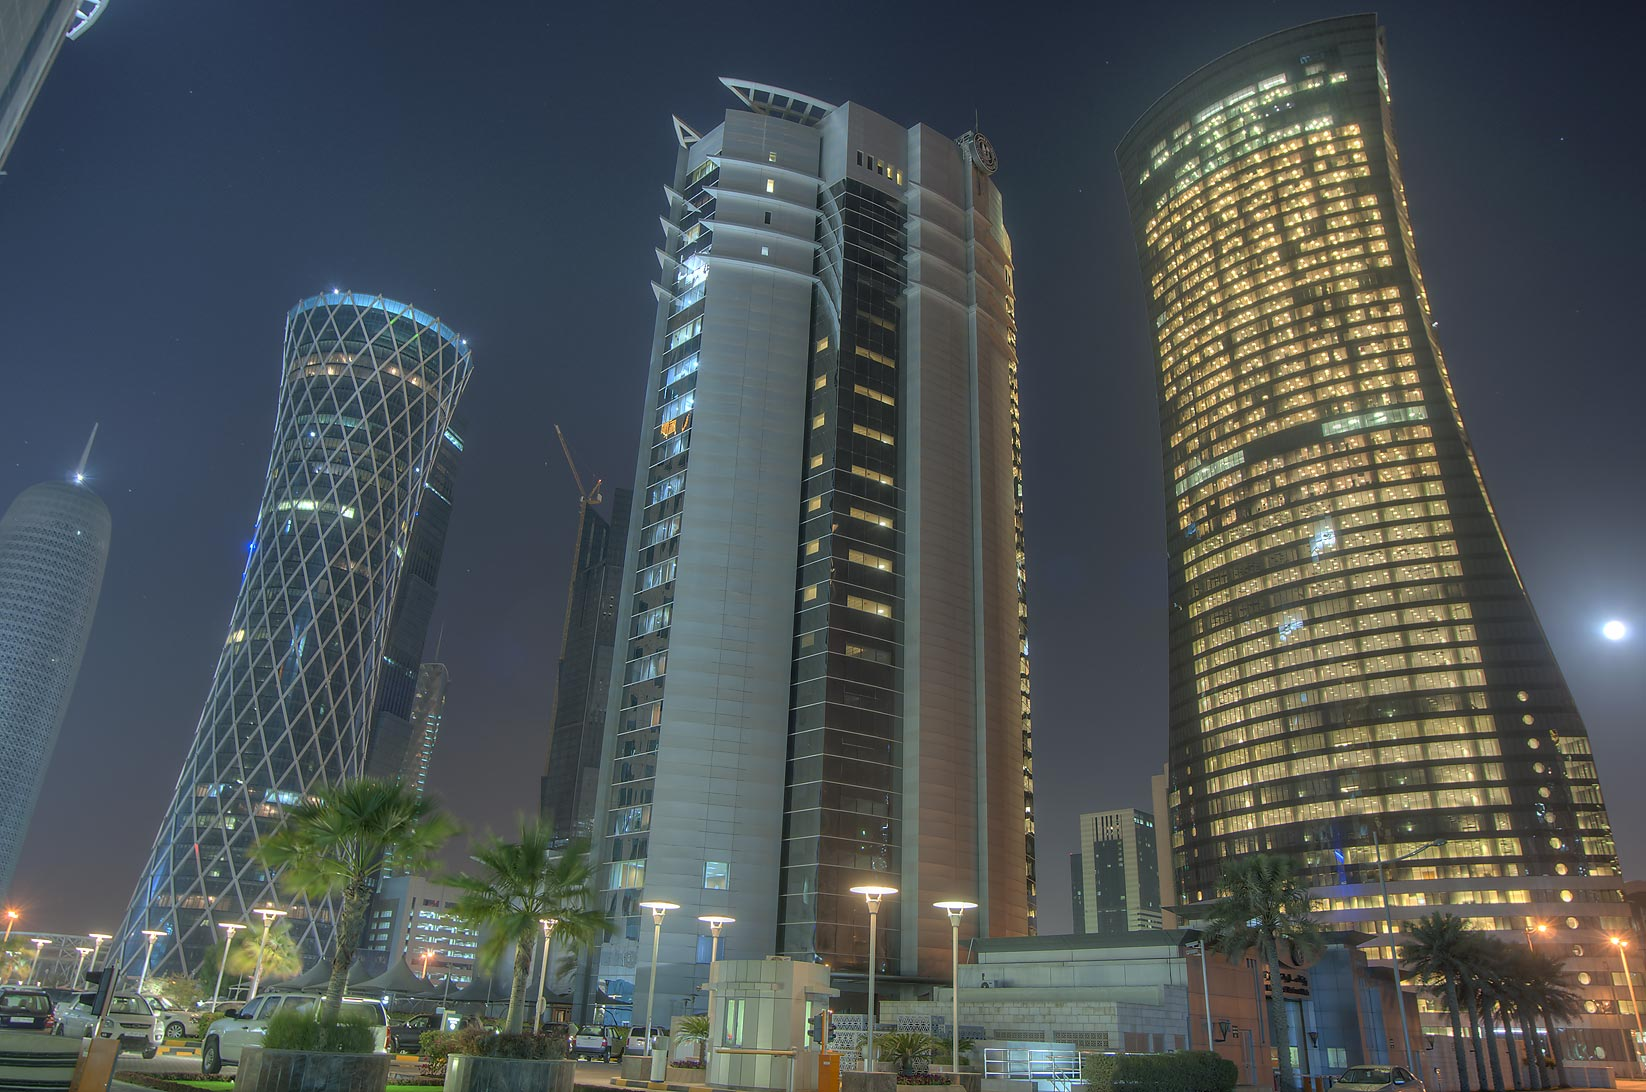 Office towers in West Bay behind City Center Mall. Doha, Qatar